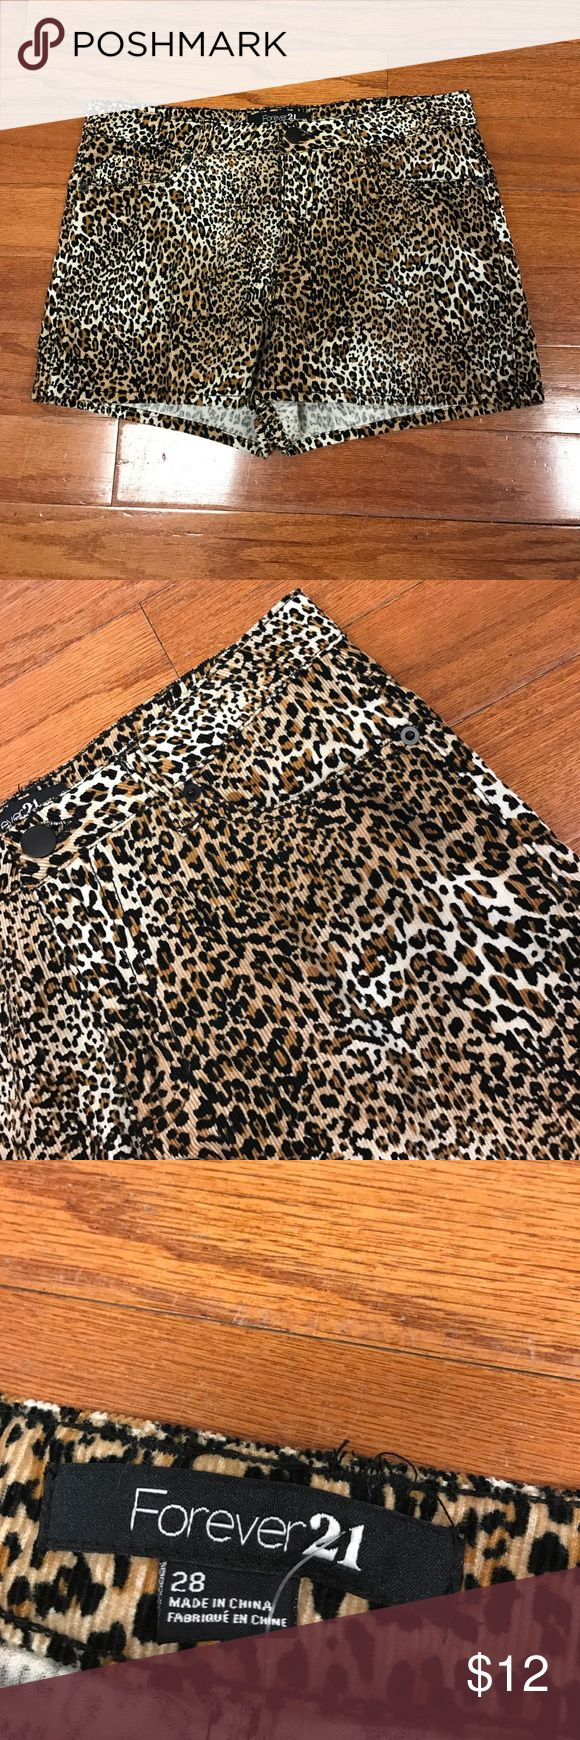 """Forever 21 Cheetah Shorts Cheetah print, 3 front and 2 back pockets, zipper and button closure. 65% polyester and 35% katoen. Soft material. Great condition. 32"""" waist by 2"""" inseam Forever 21 Shorts"""